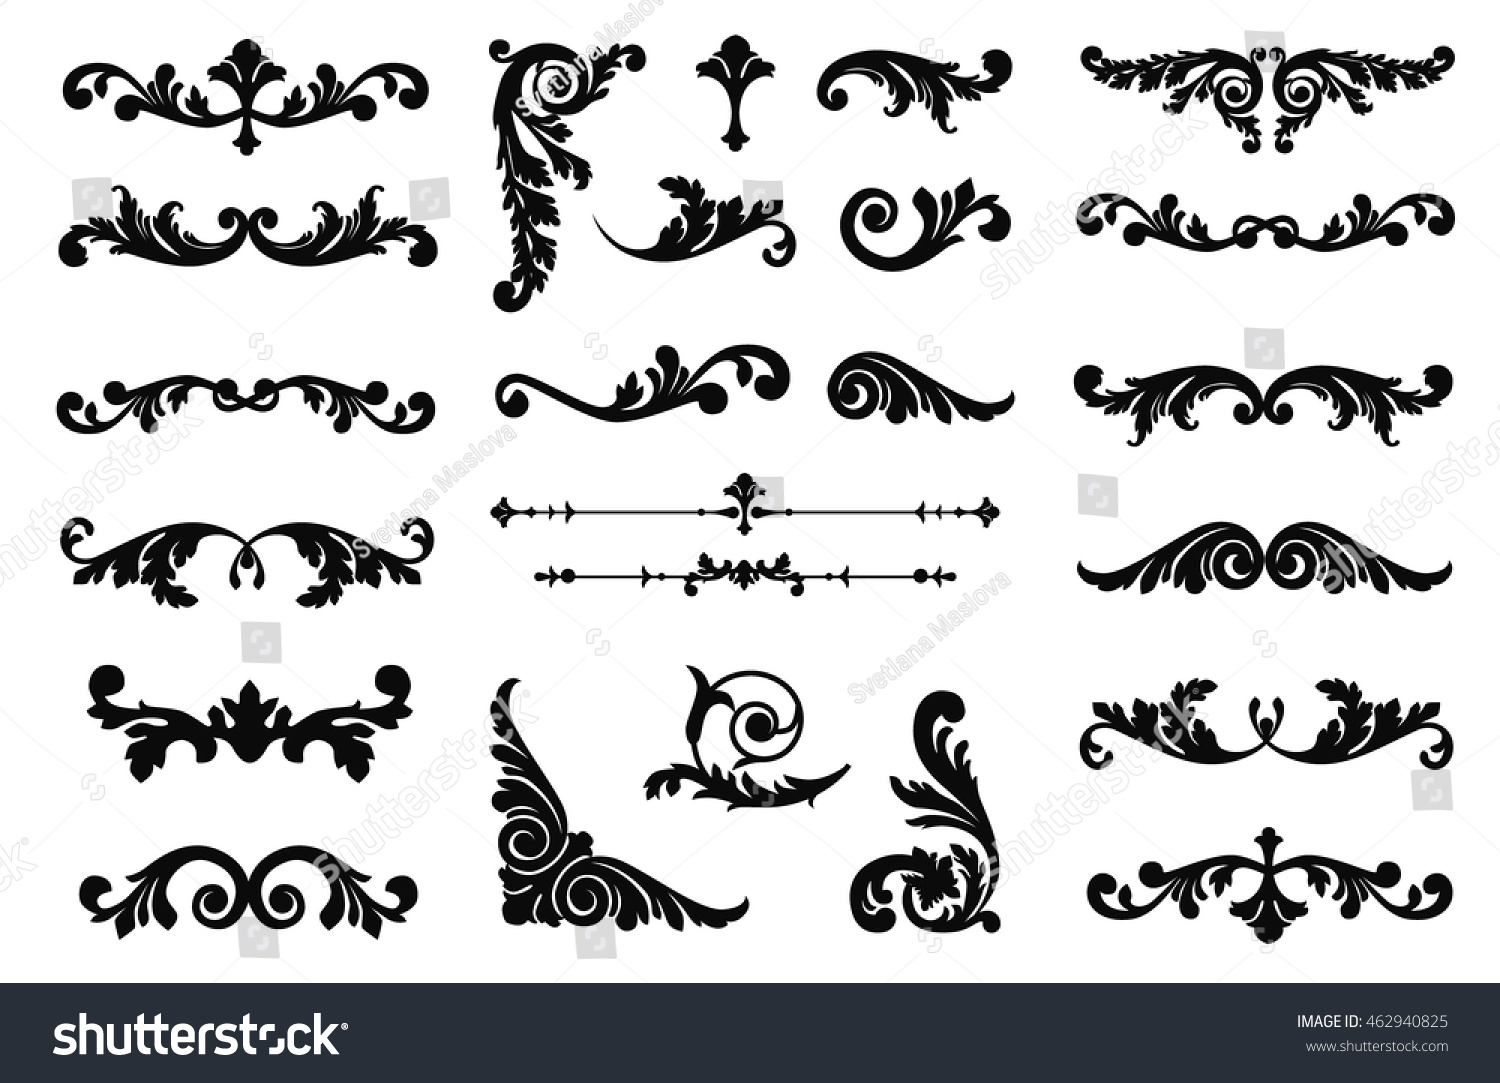 Ornate scroll and decorative design elements Vintage Vignette Borders Set Calligraphic Vector illustration isolated